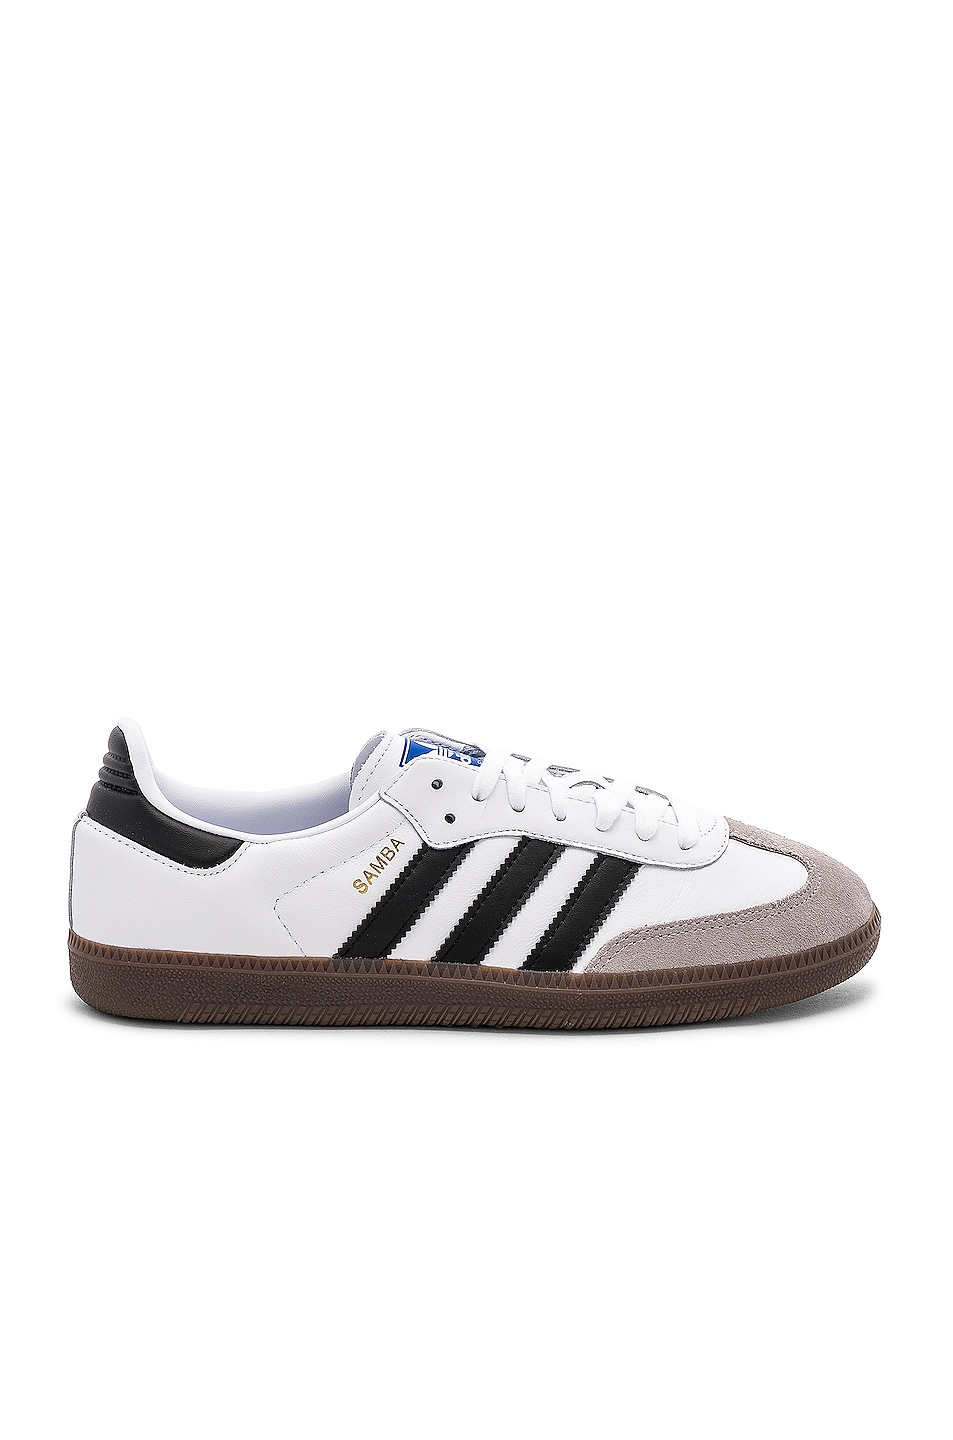 Image 1 of adidas Originals Samba in White & Black & Clear Granite